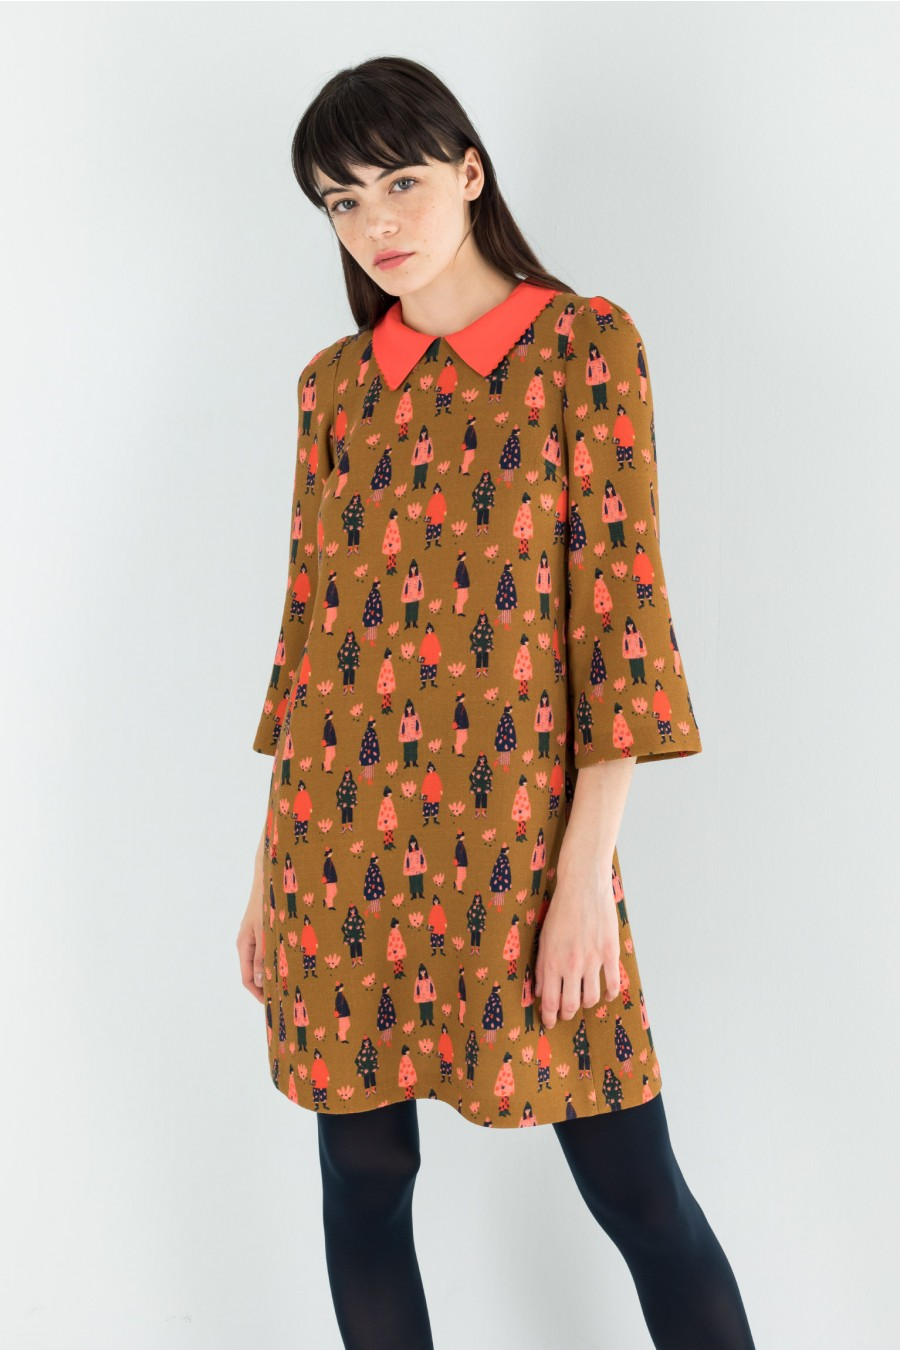 60s dress with detachable collar